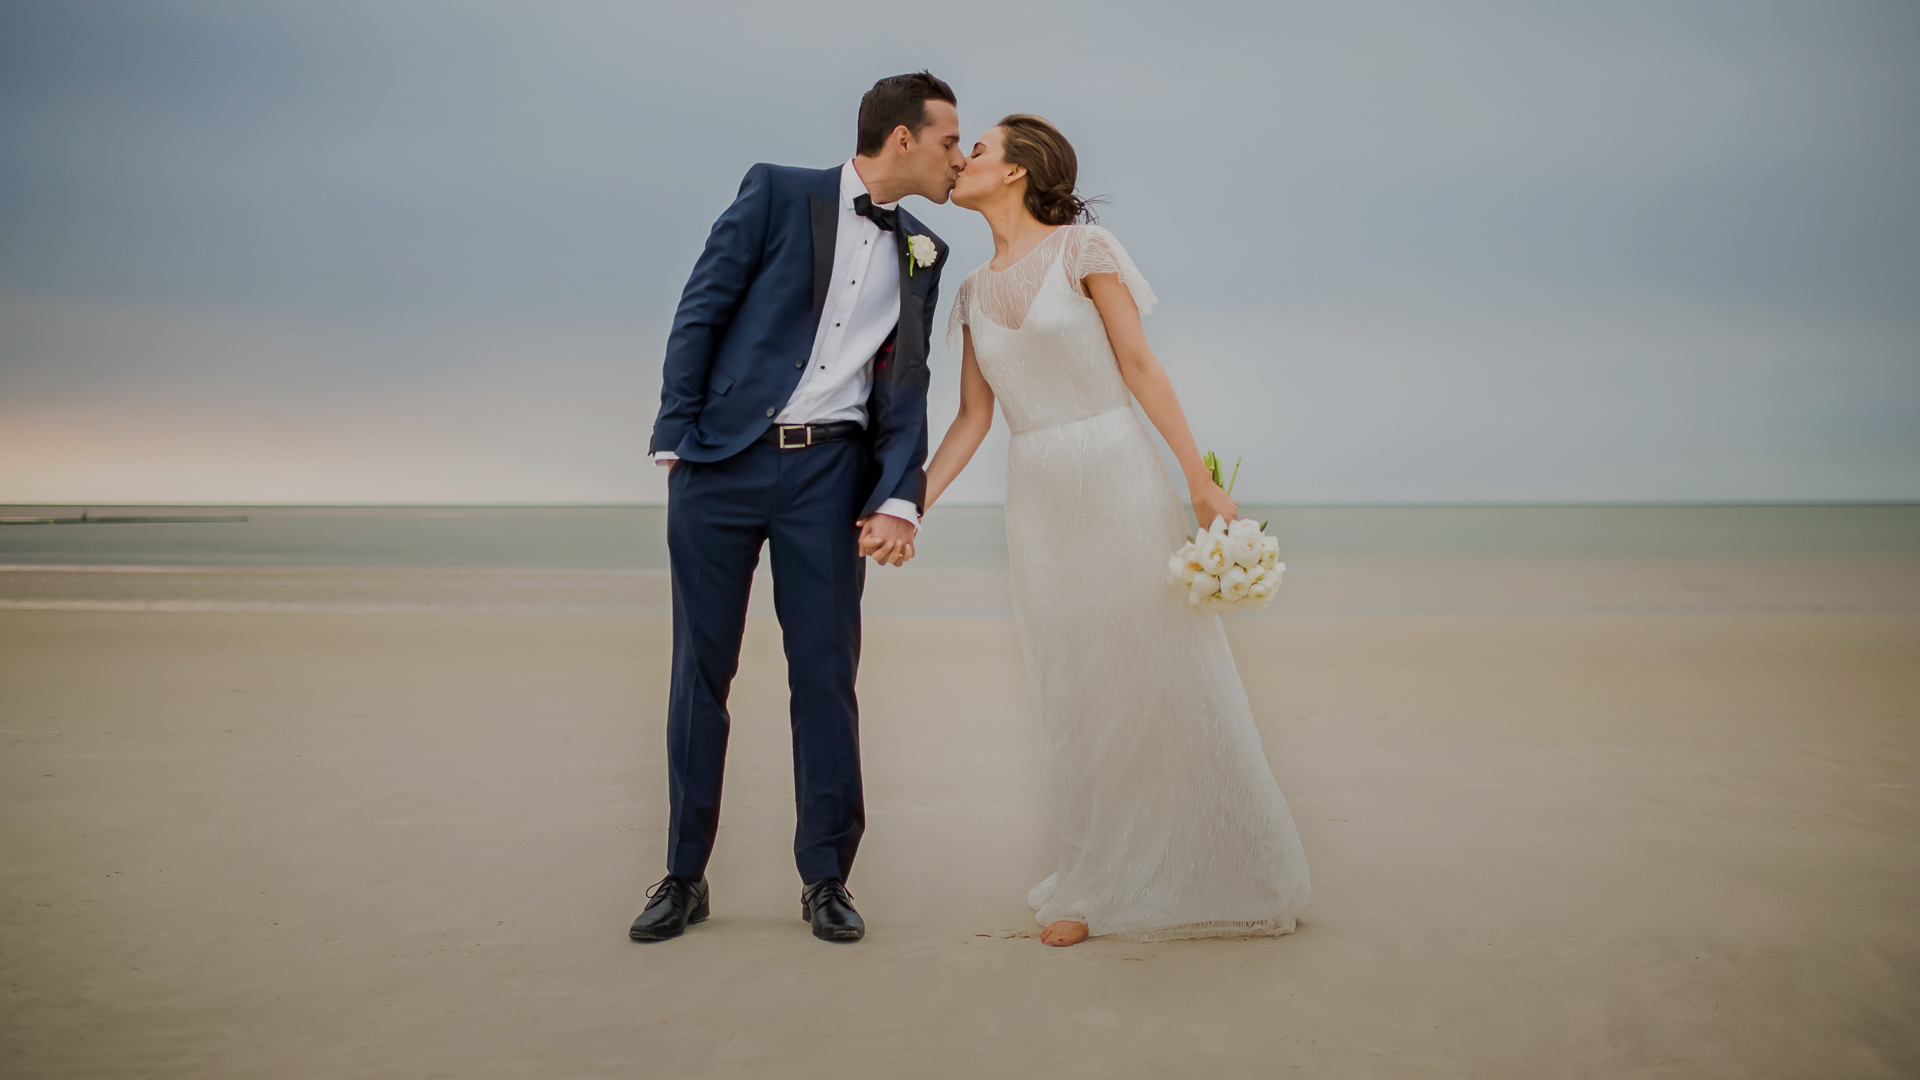 Check portfolios, pricing and availability for wedding photographers in Providence